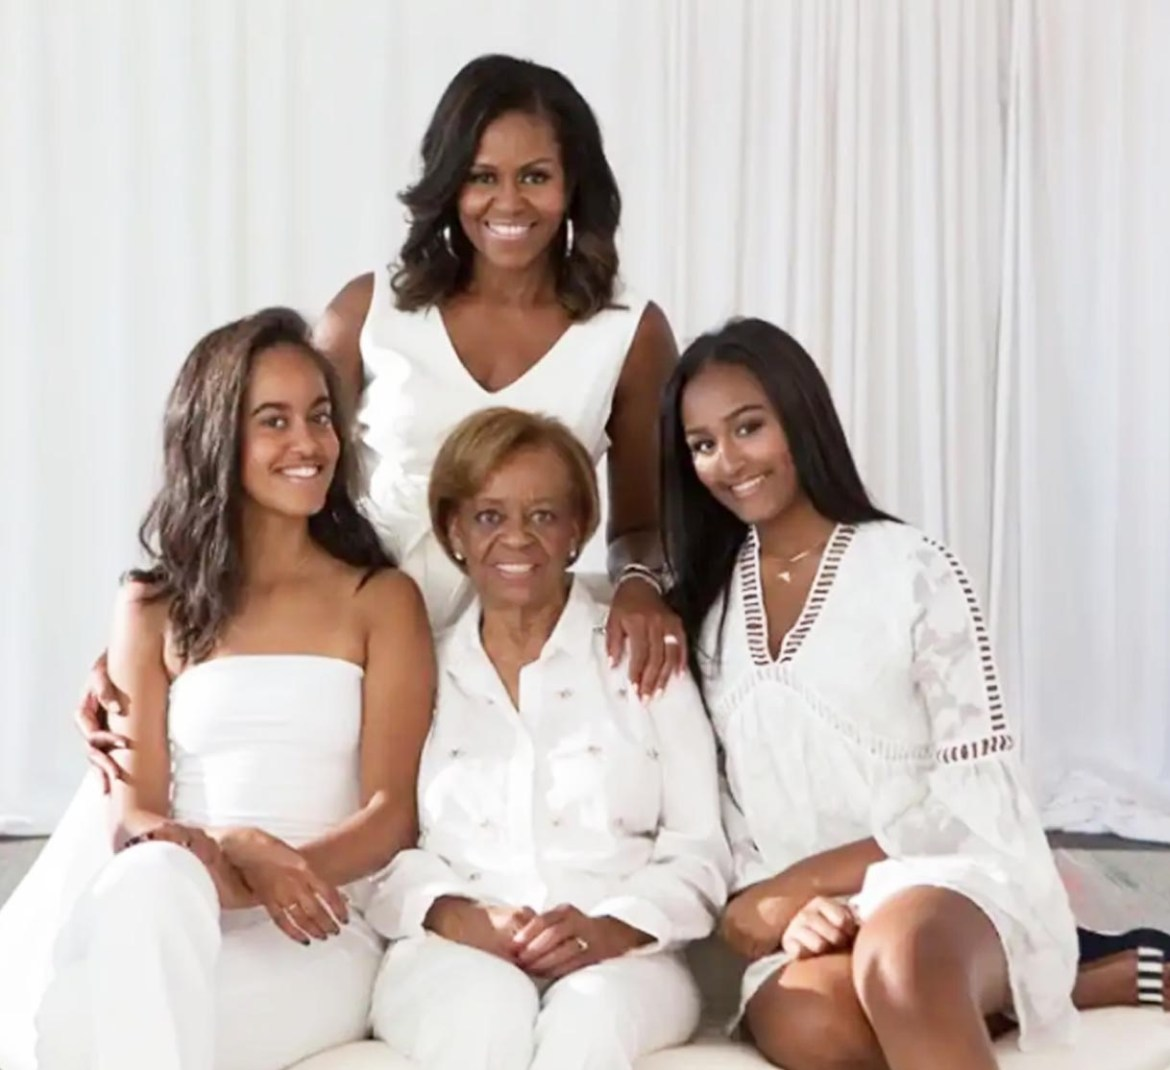 Michelle Obama building a legacy